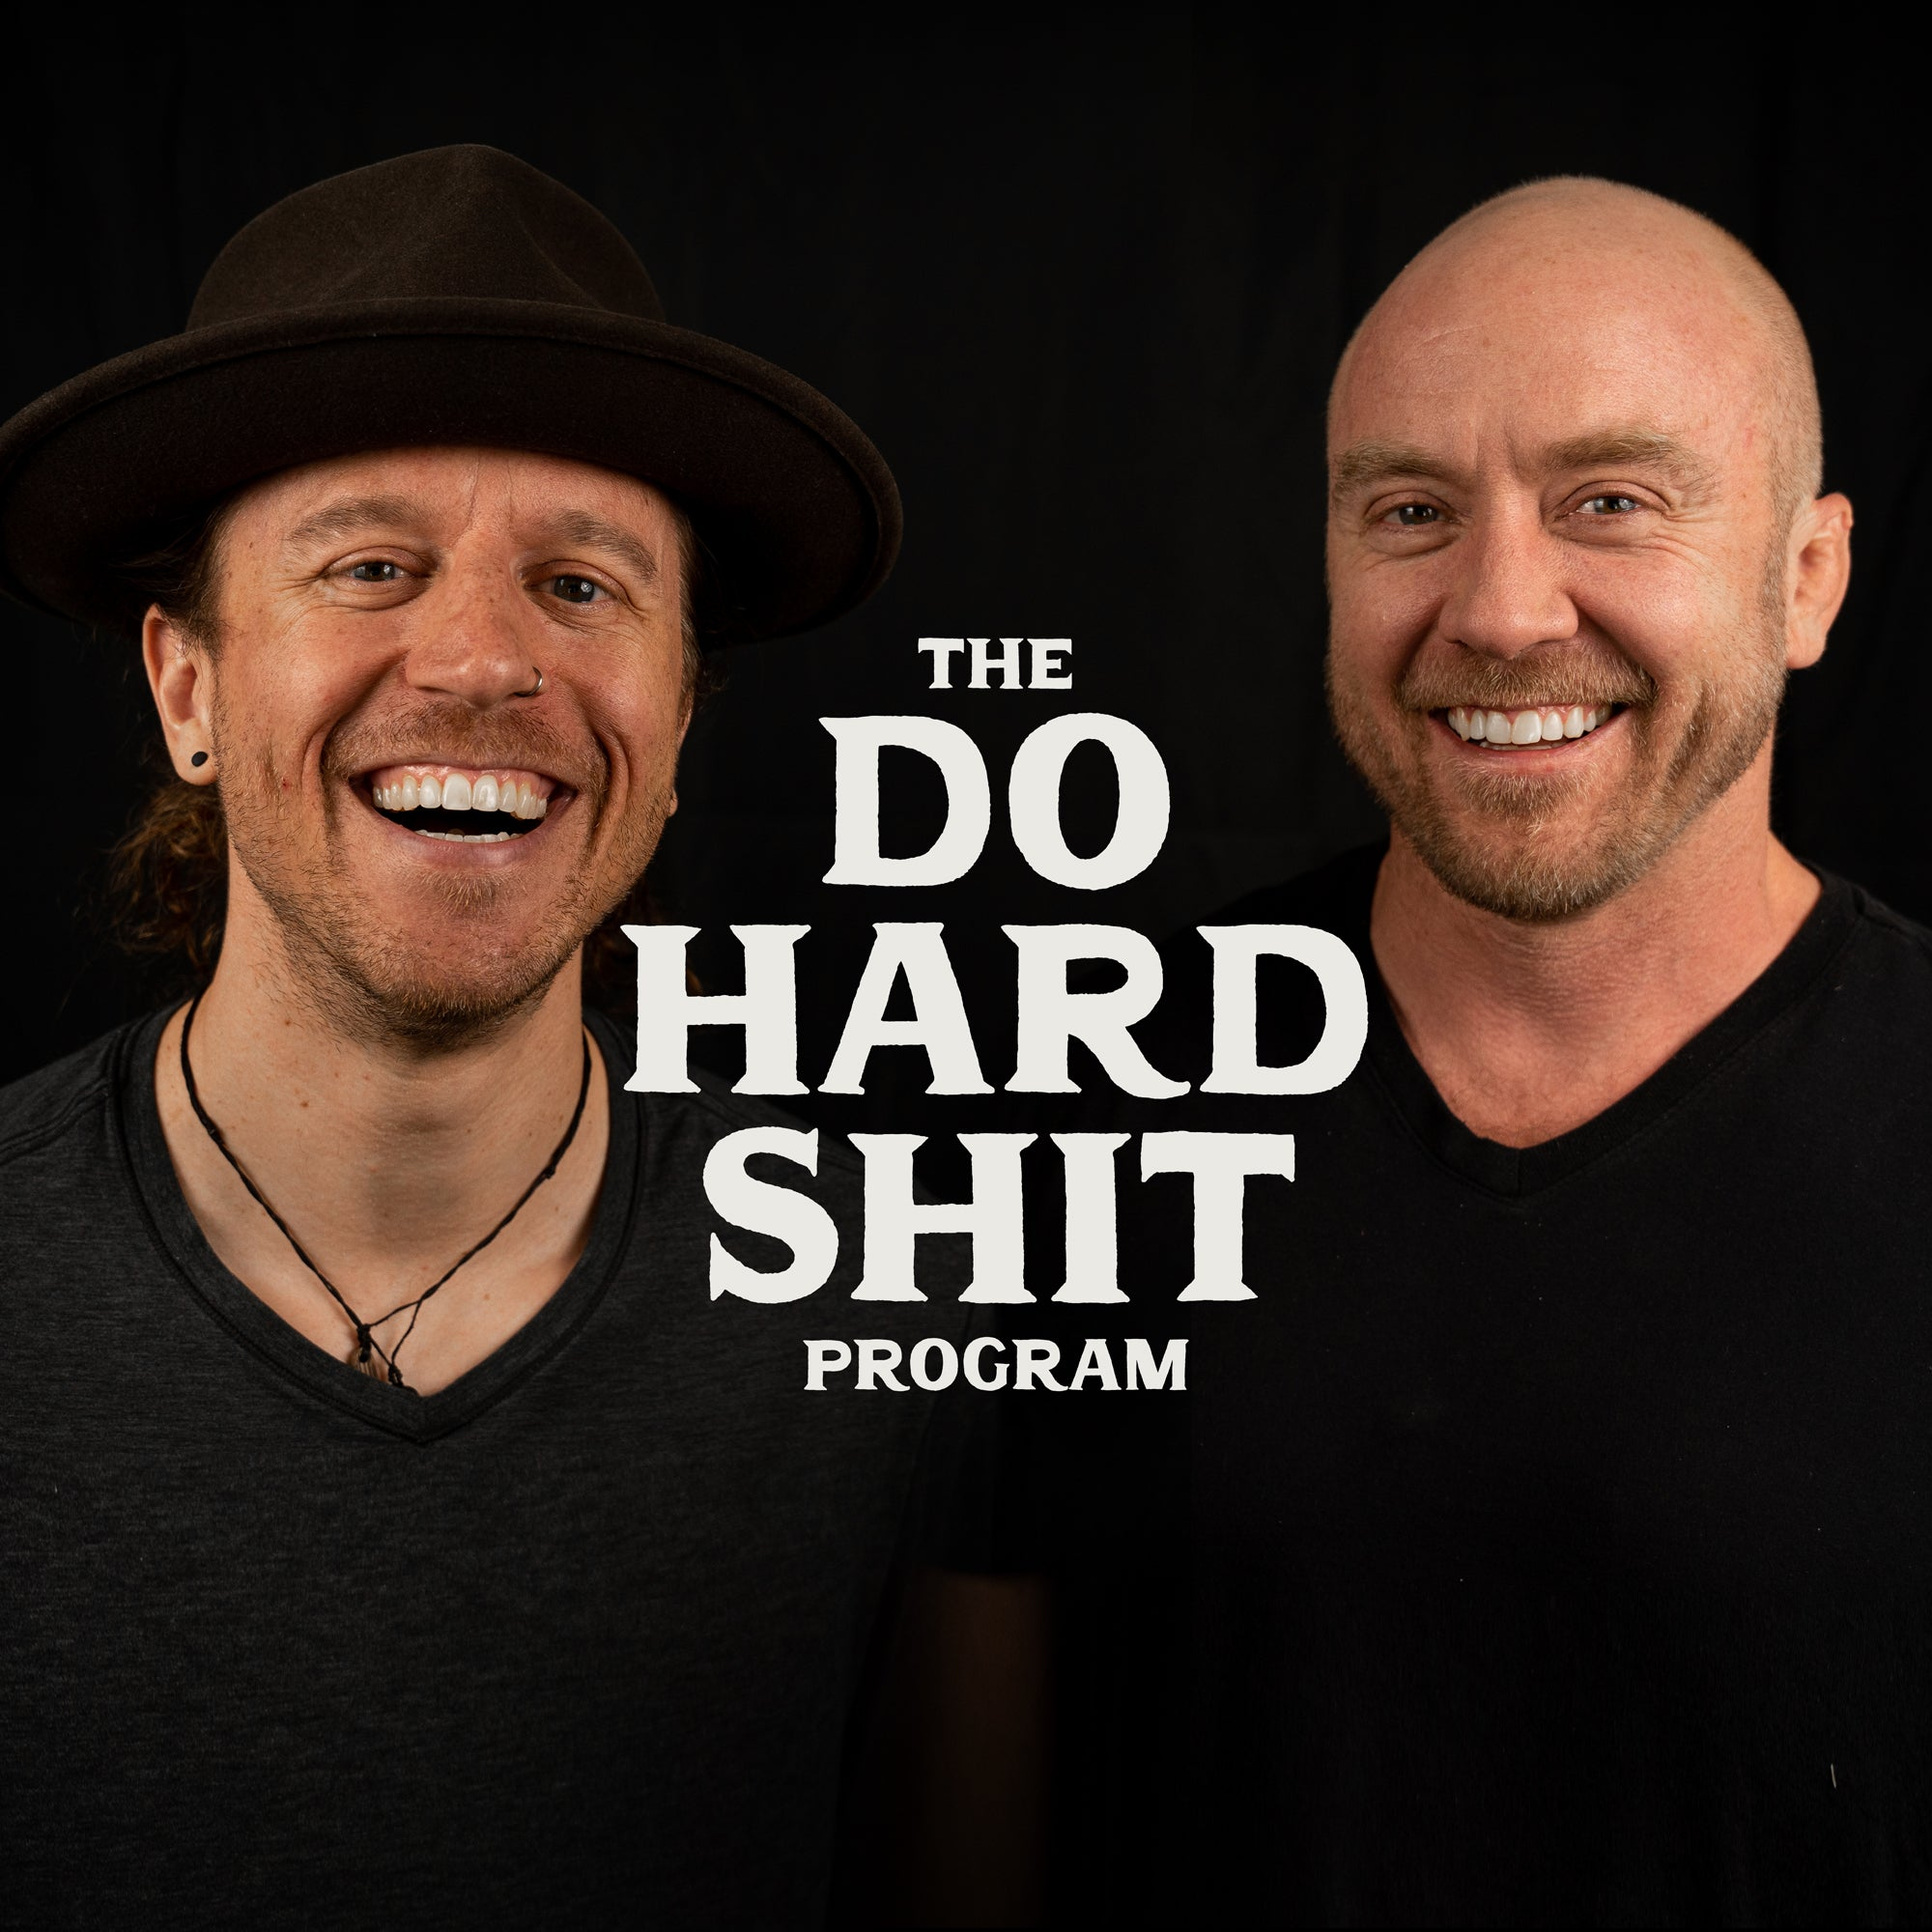 The Do Hard Shit Program